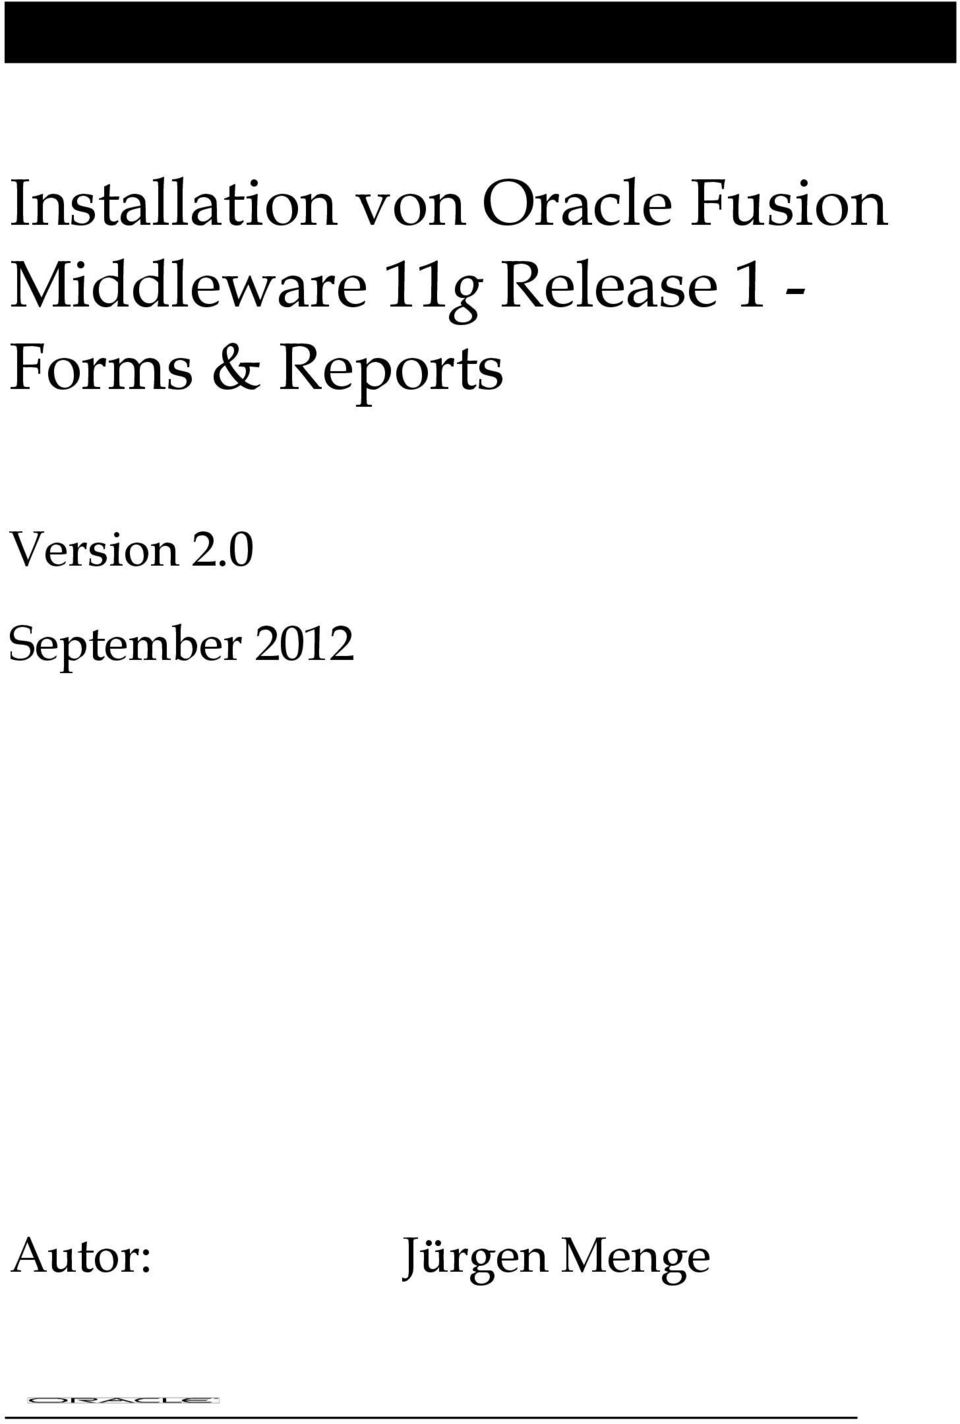 1 - Forms & Reports Version 2.